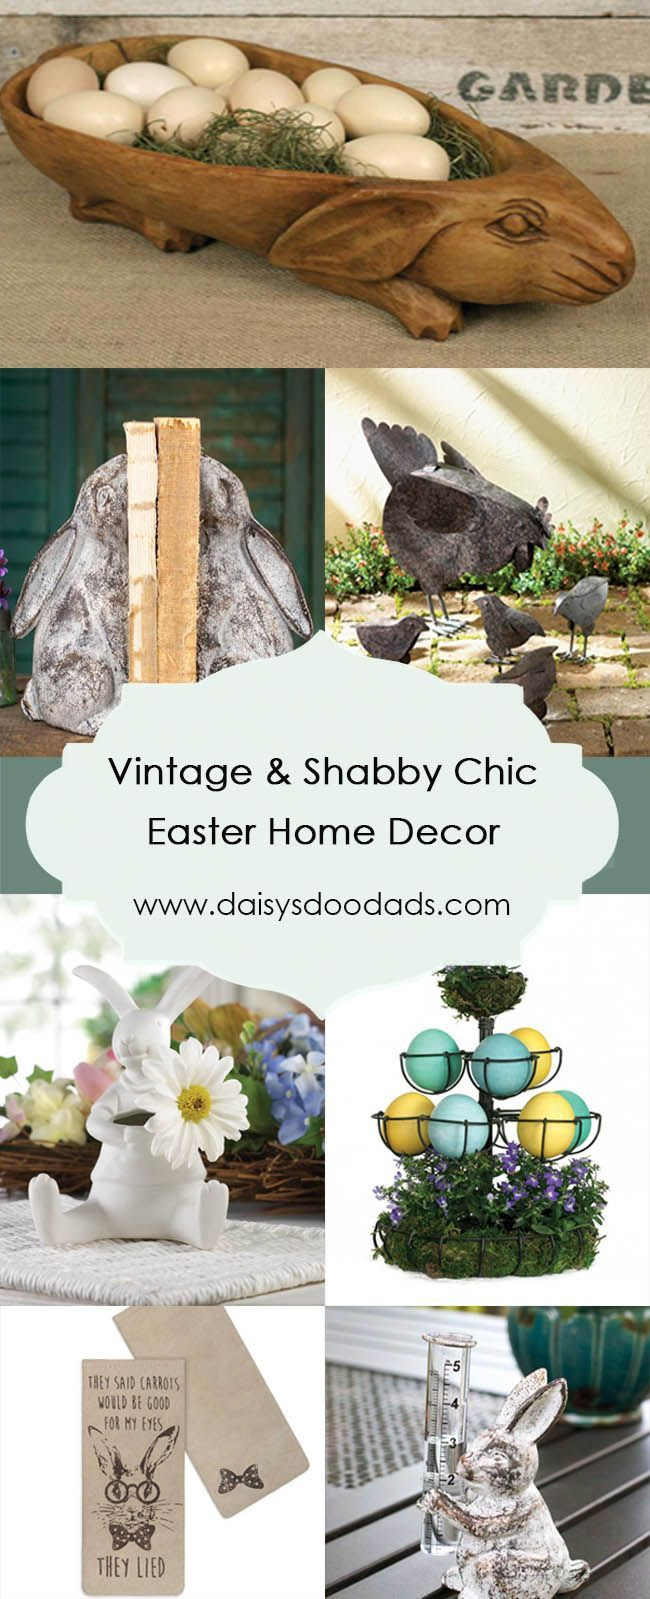 Vintage / Shabby Chic Easter Home Decor